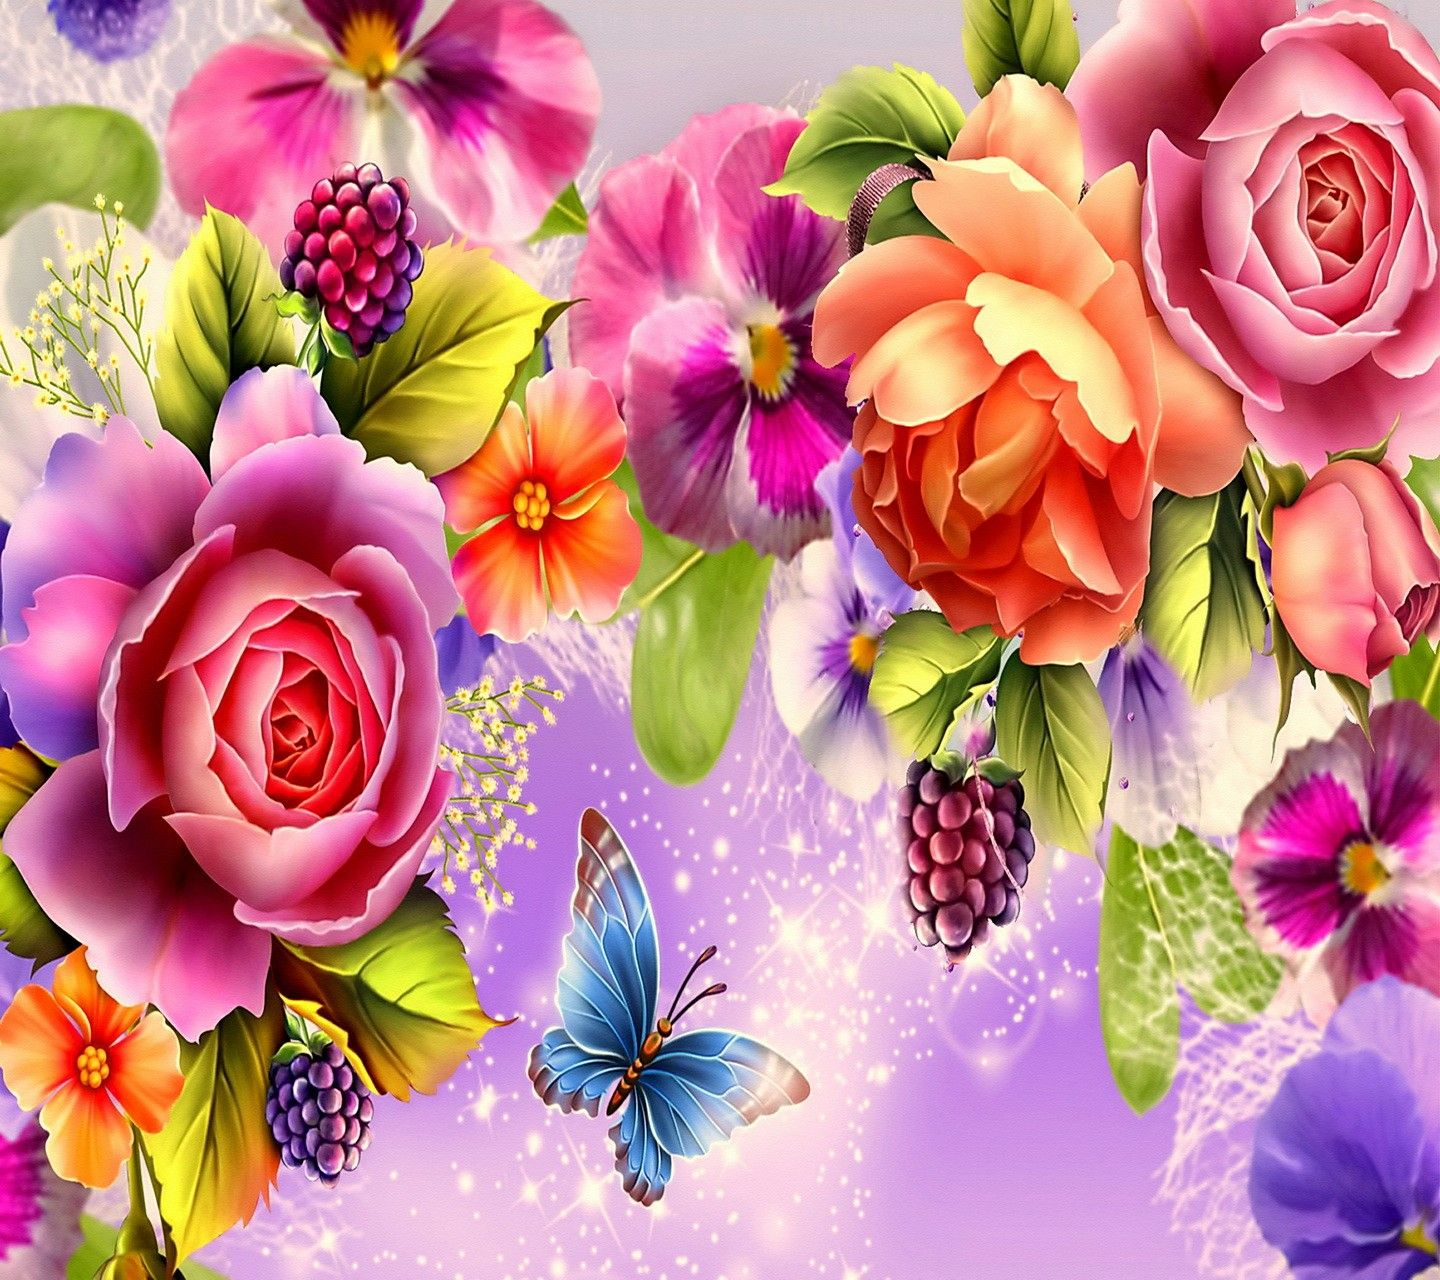 Flowers With Butterfly Wallpapers Hd Free Pictures On Greepx